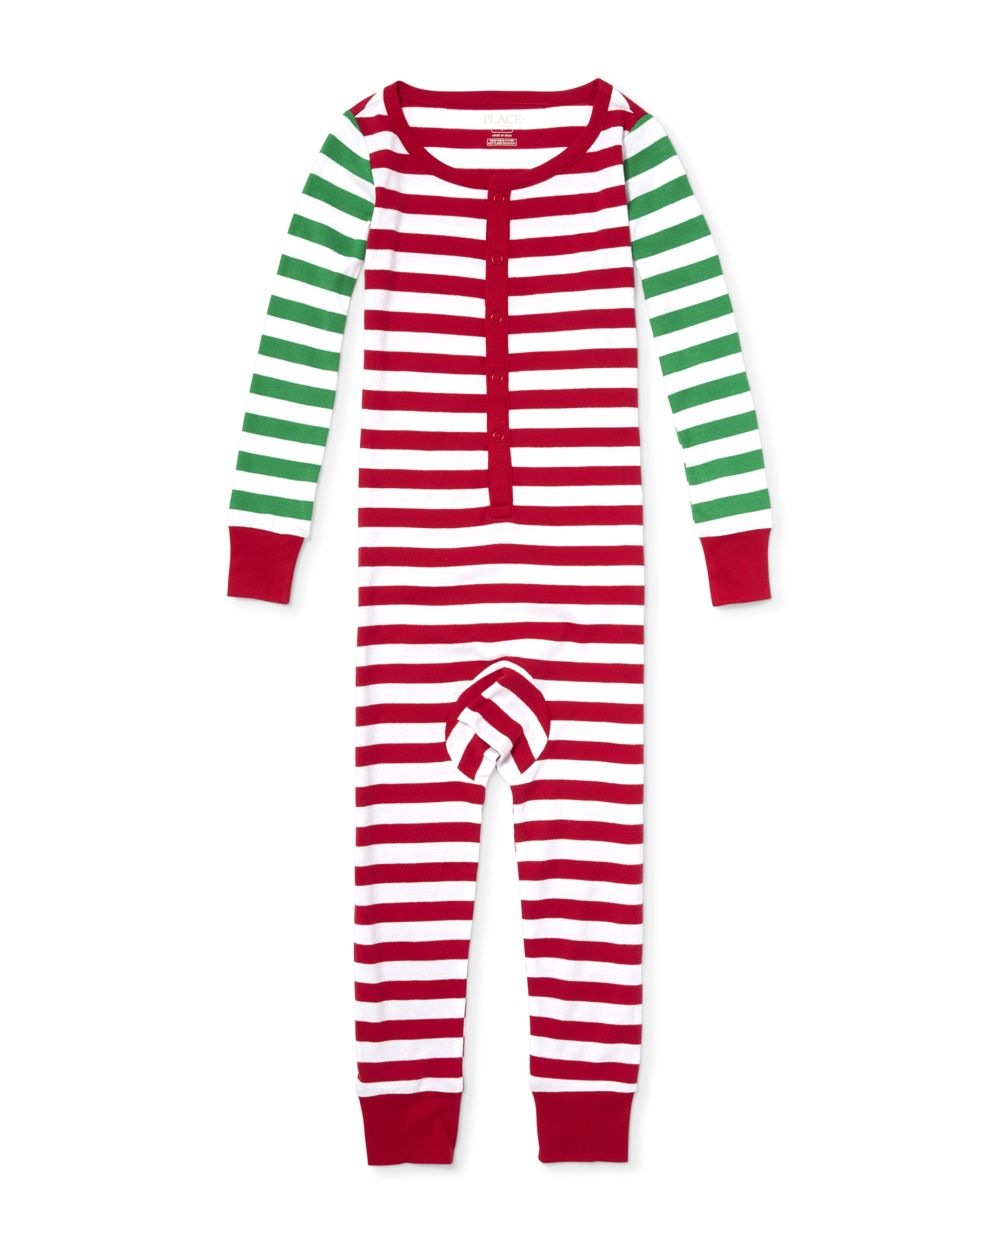 Unisex Kids Matching Family Long Sleeve Striped Snug Fit Cotton One Piece Pajamas